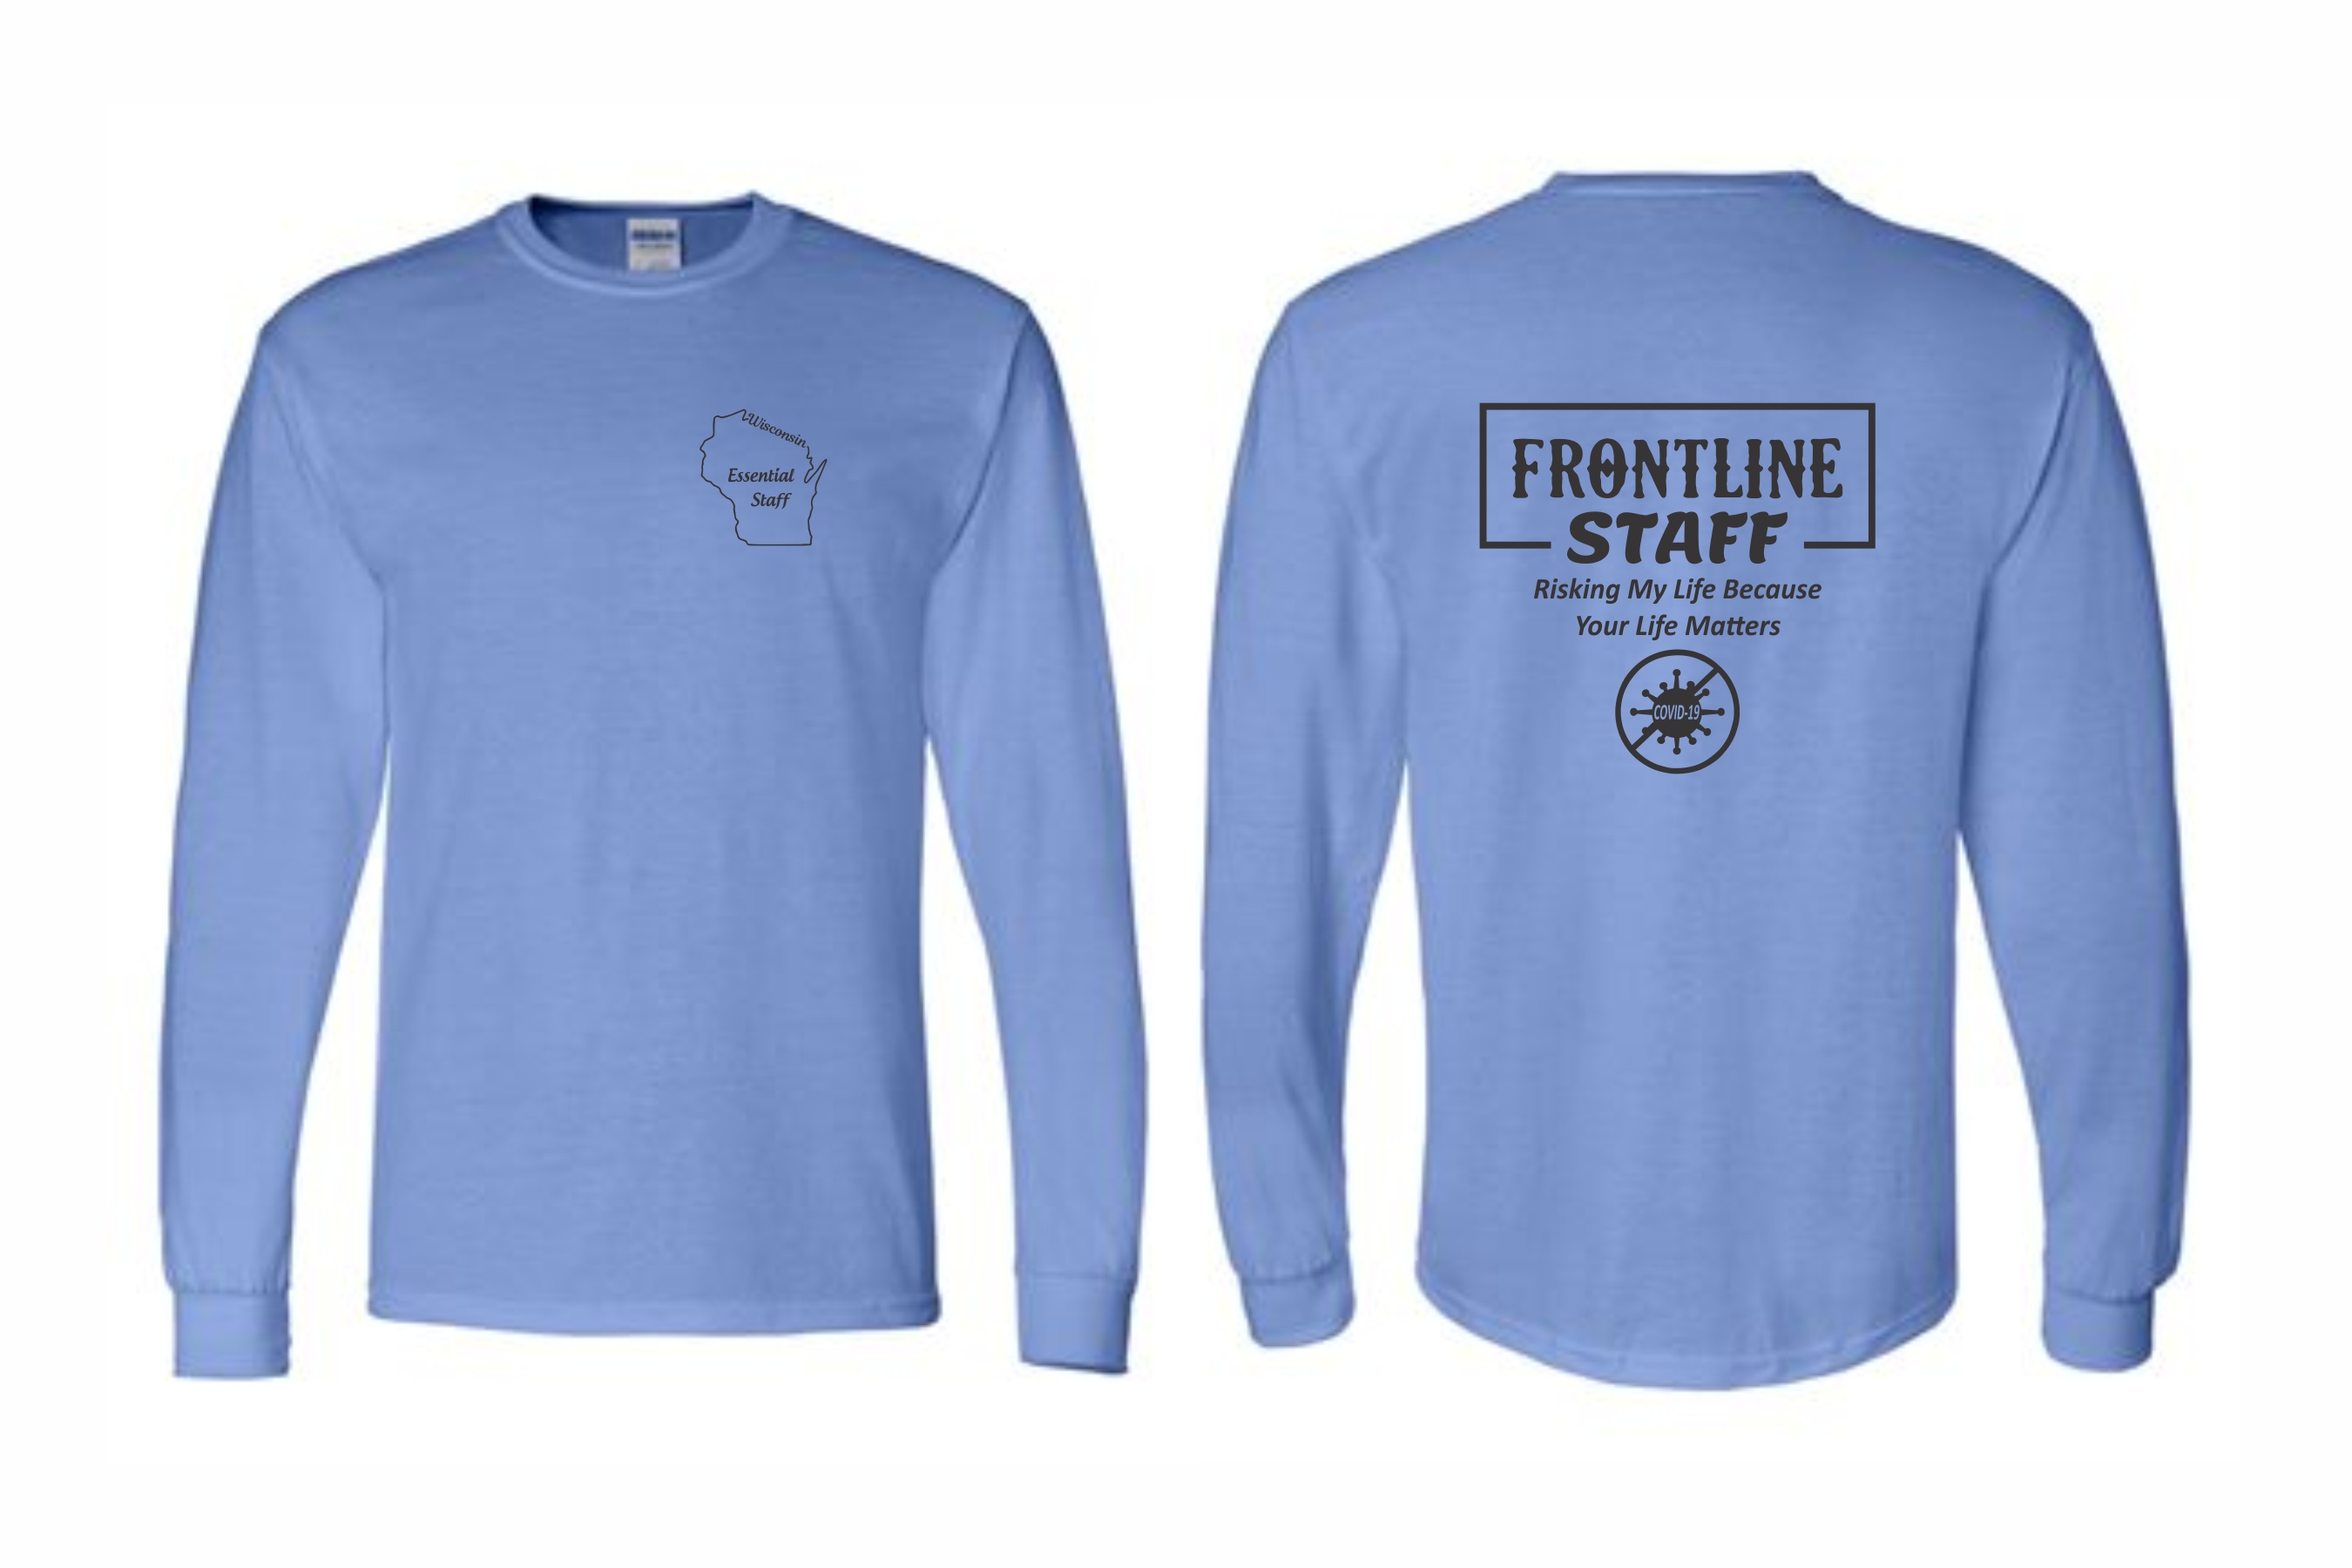 ProHealth Waukesha ER - Long Sleeve T-Shirt - Frontline Staff